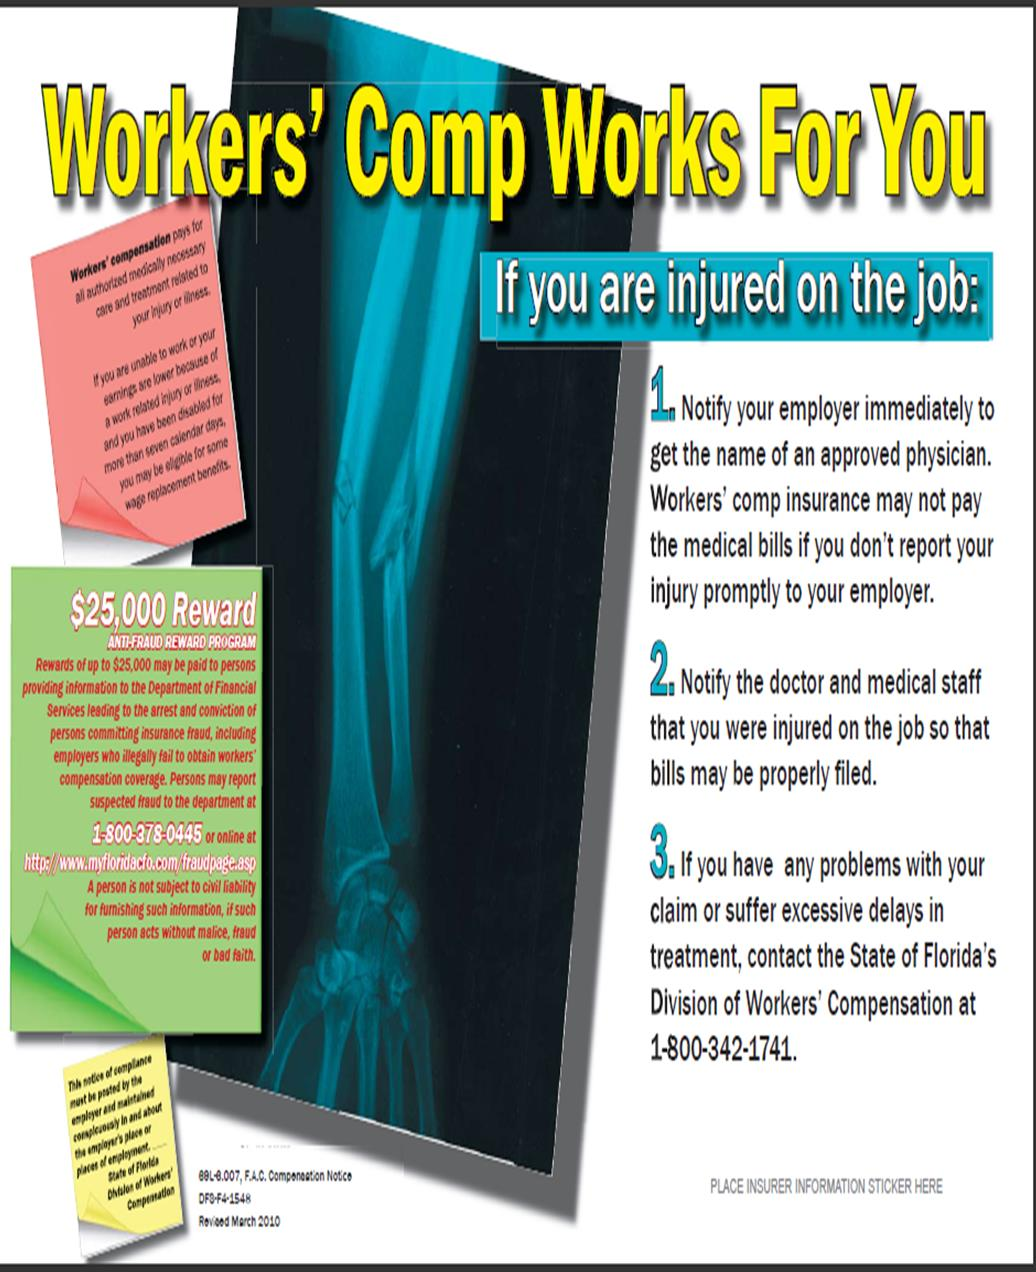 Florida Guidelines - Section A: Workers Comp Works for You (English) Section A: Compensación Por accidentes De Trabajo Labora Para Usted (Spanish) Compensación Por accidentes De